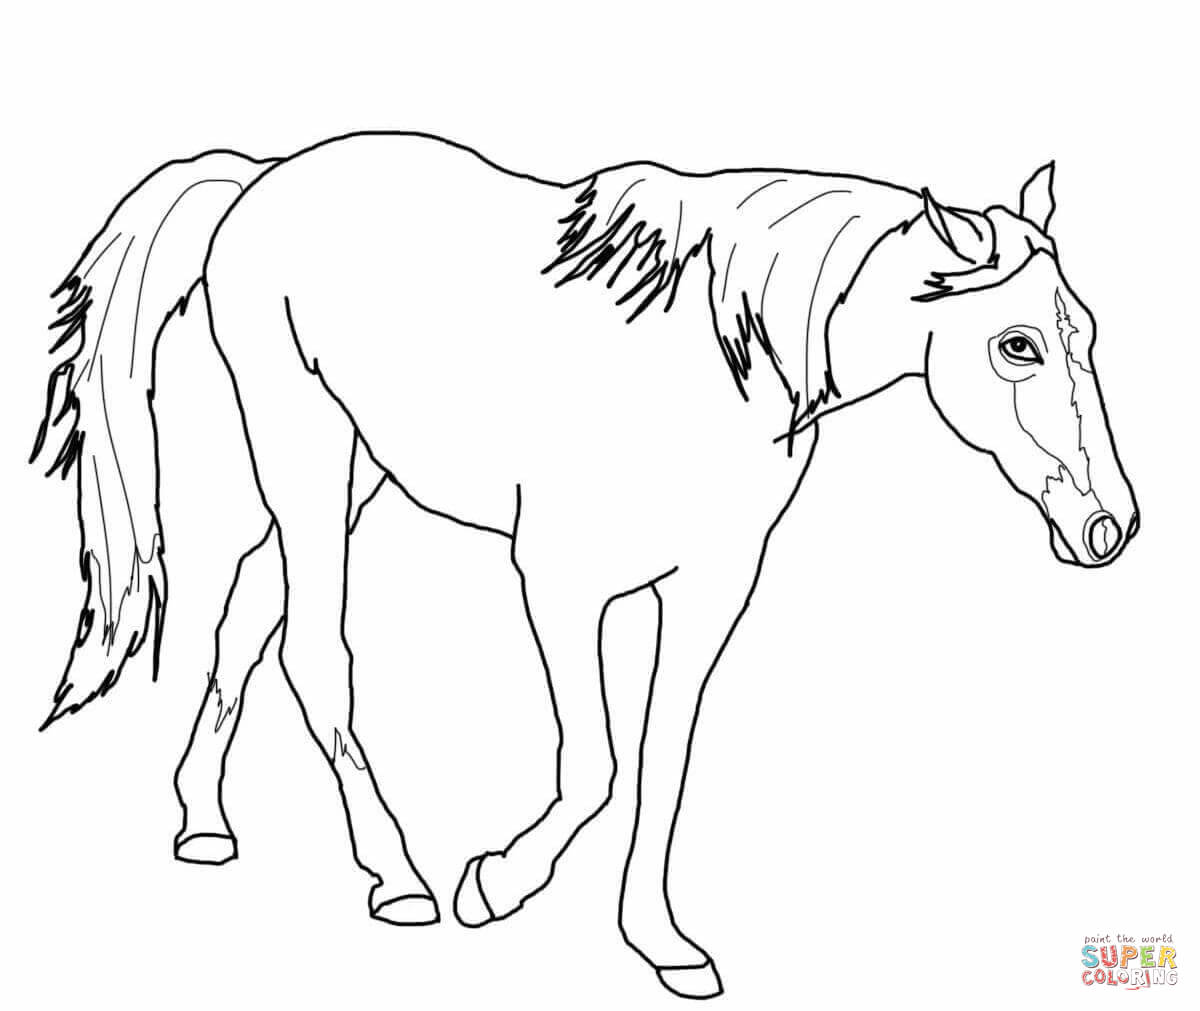 Horse Jumping Drawing at GetDrawings.com | Free for personal use ...